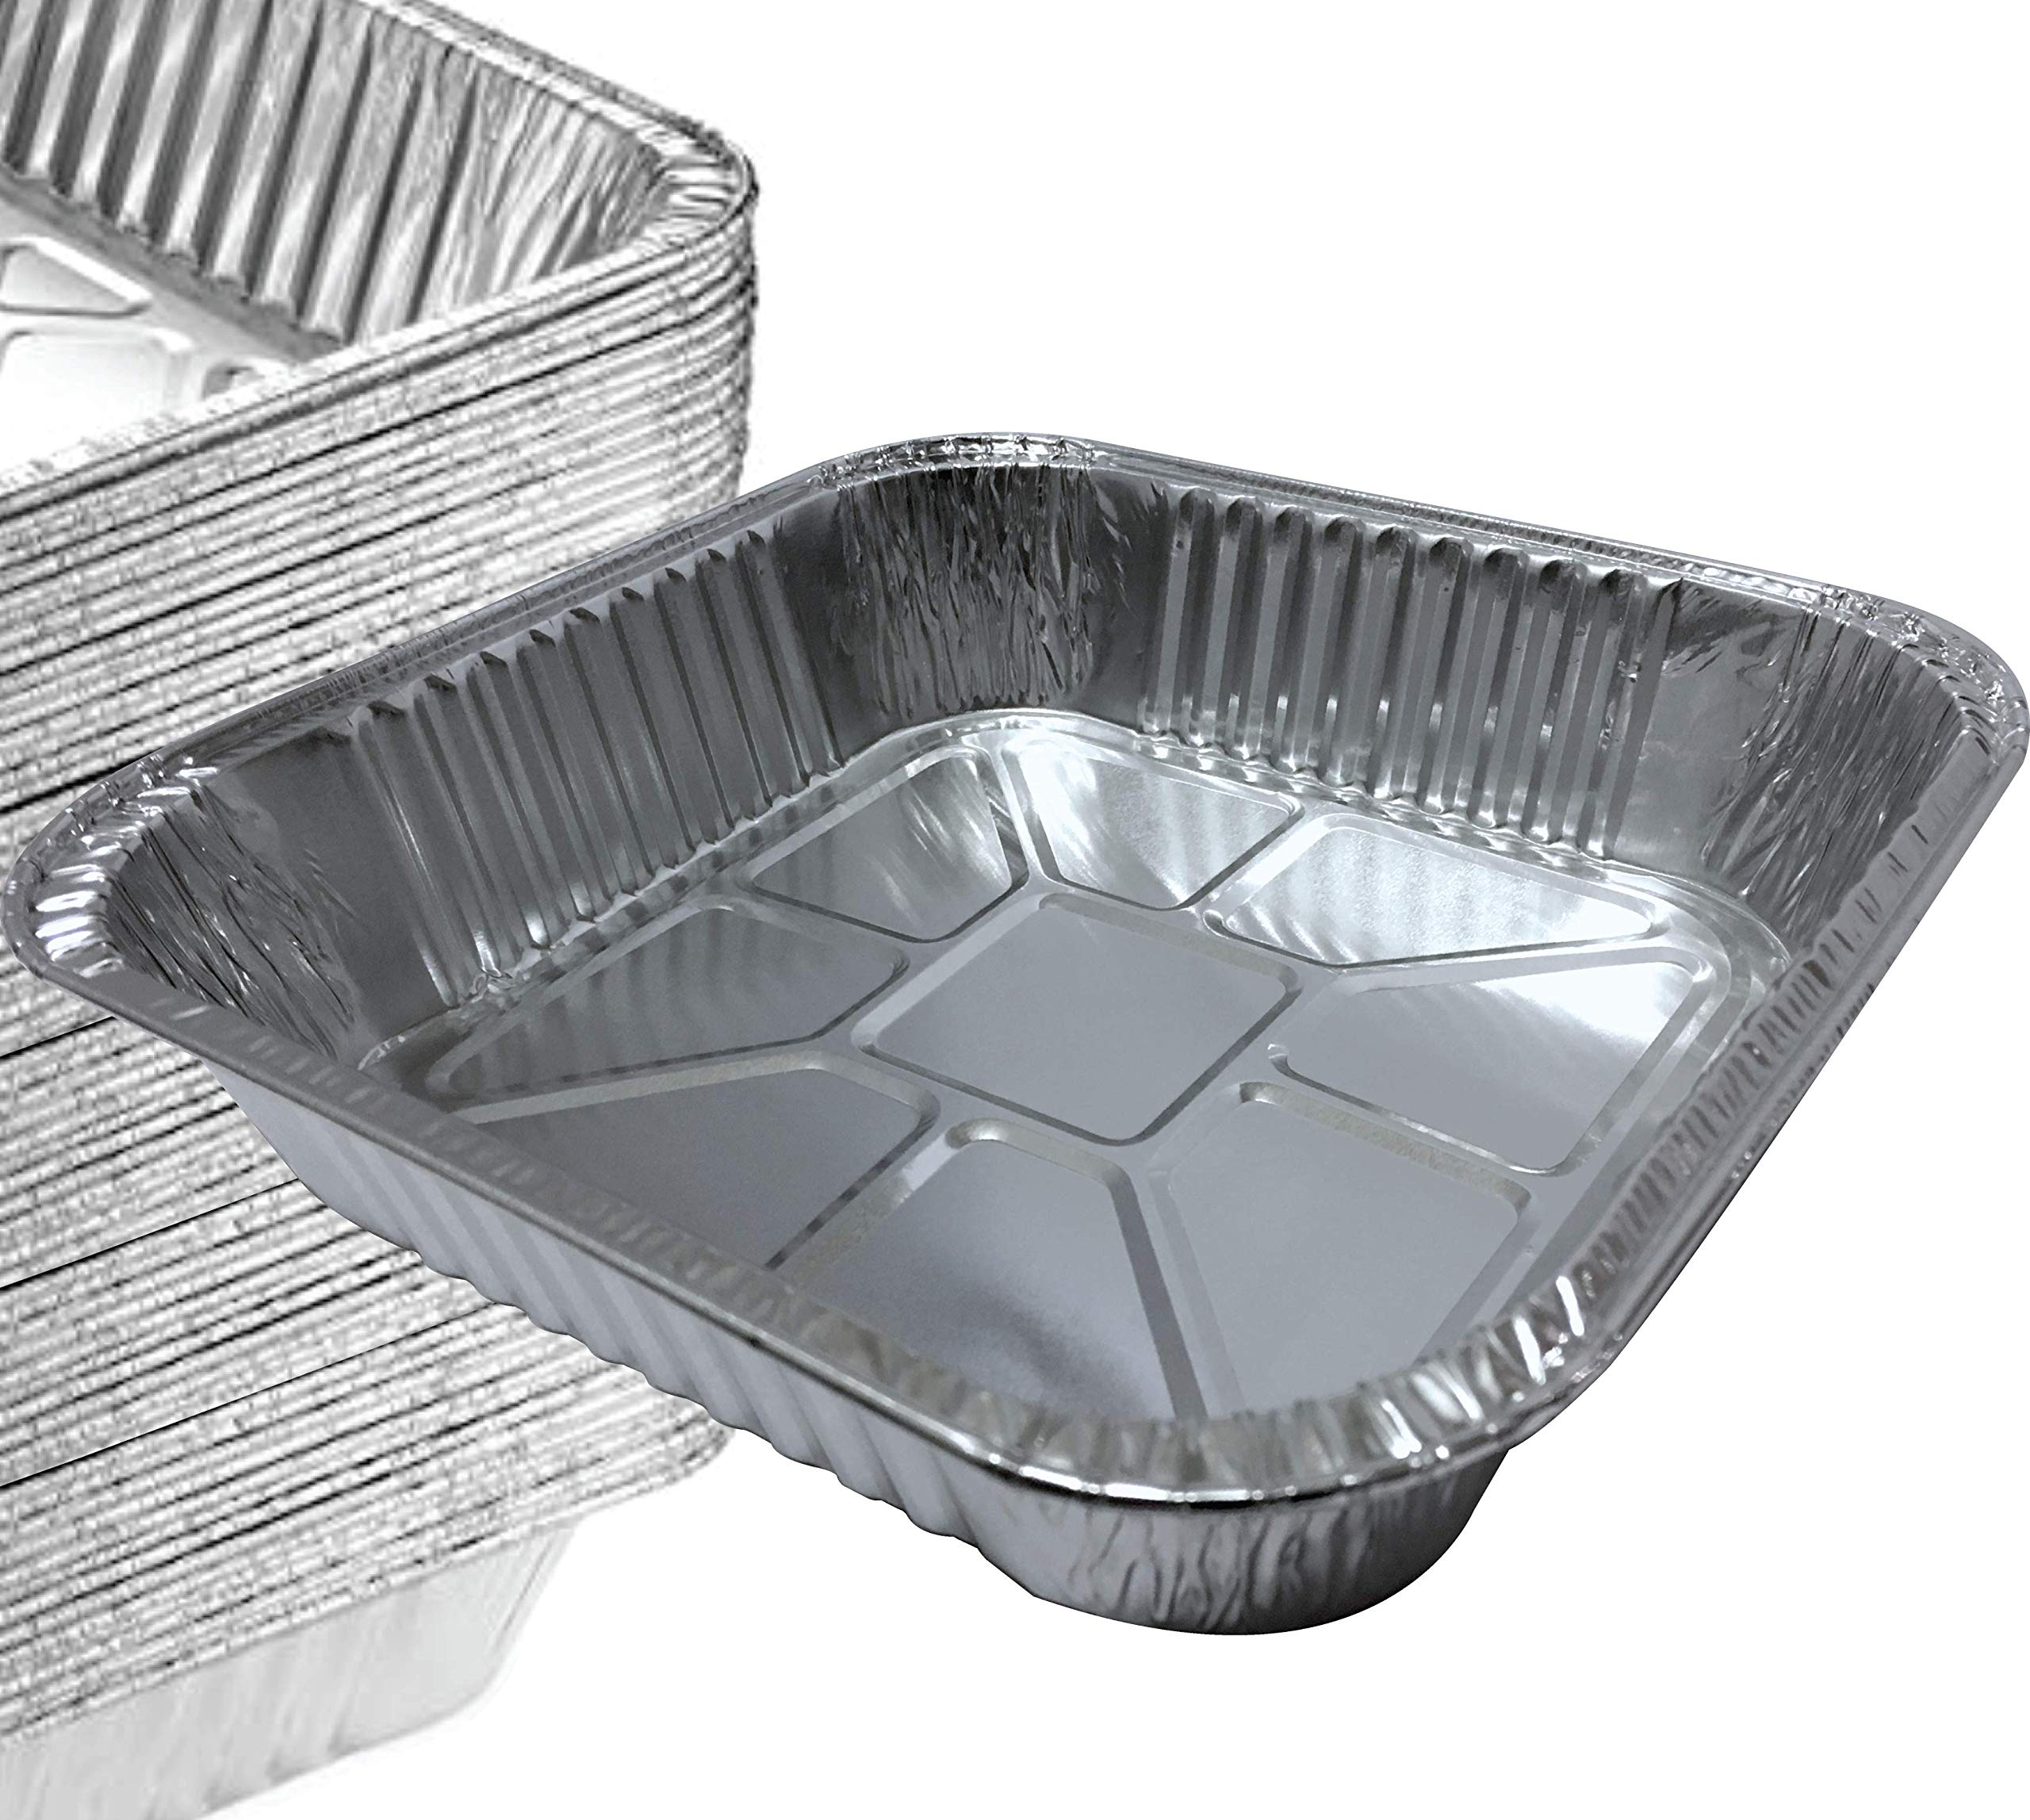 55 PACK - Top: 8''x8'' Bottom: 6.5'' x 6.5'' Square Pans I Deli Brownie Pan I Square Baking Pans I Cake Pans I Aluminum Brownie Pan I Square Foil Pans, Broiling & Cooking. Tasty Brownies & Cakes by Spare Essentials